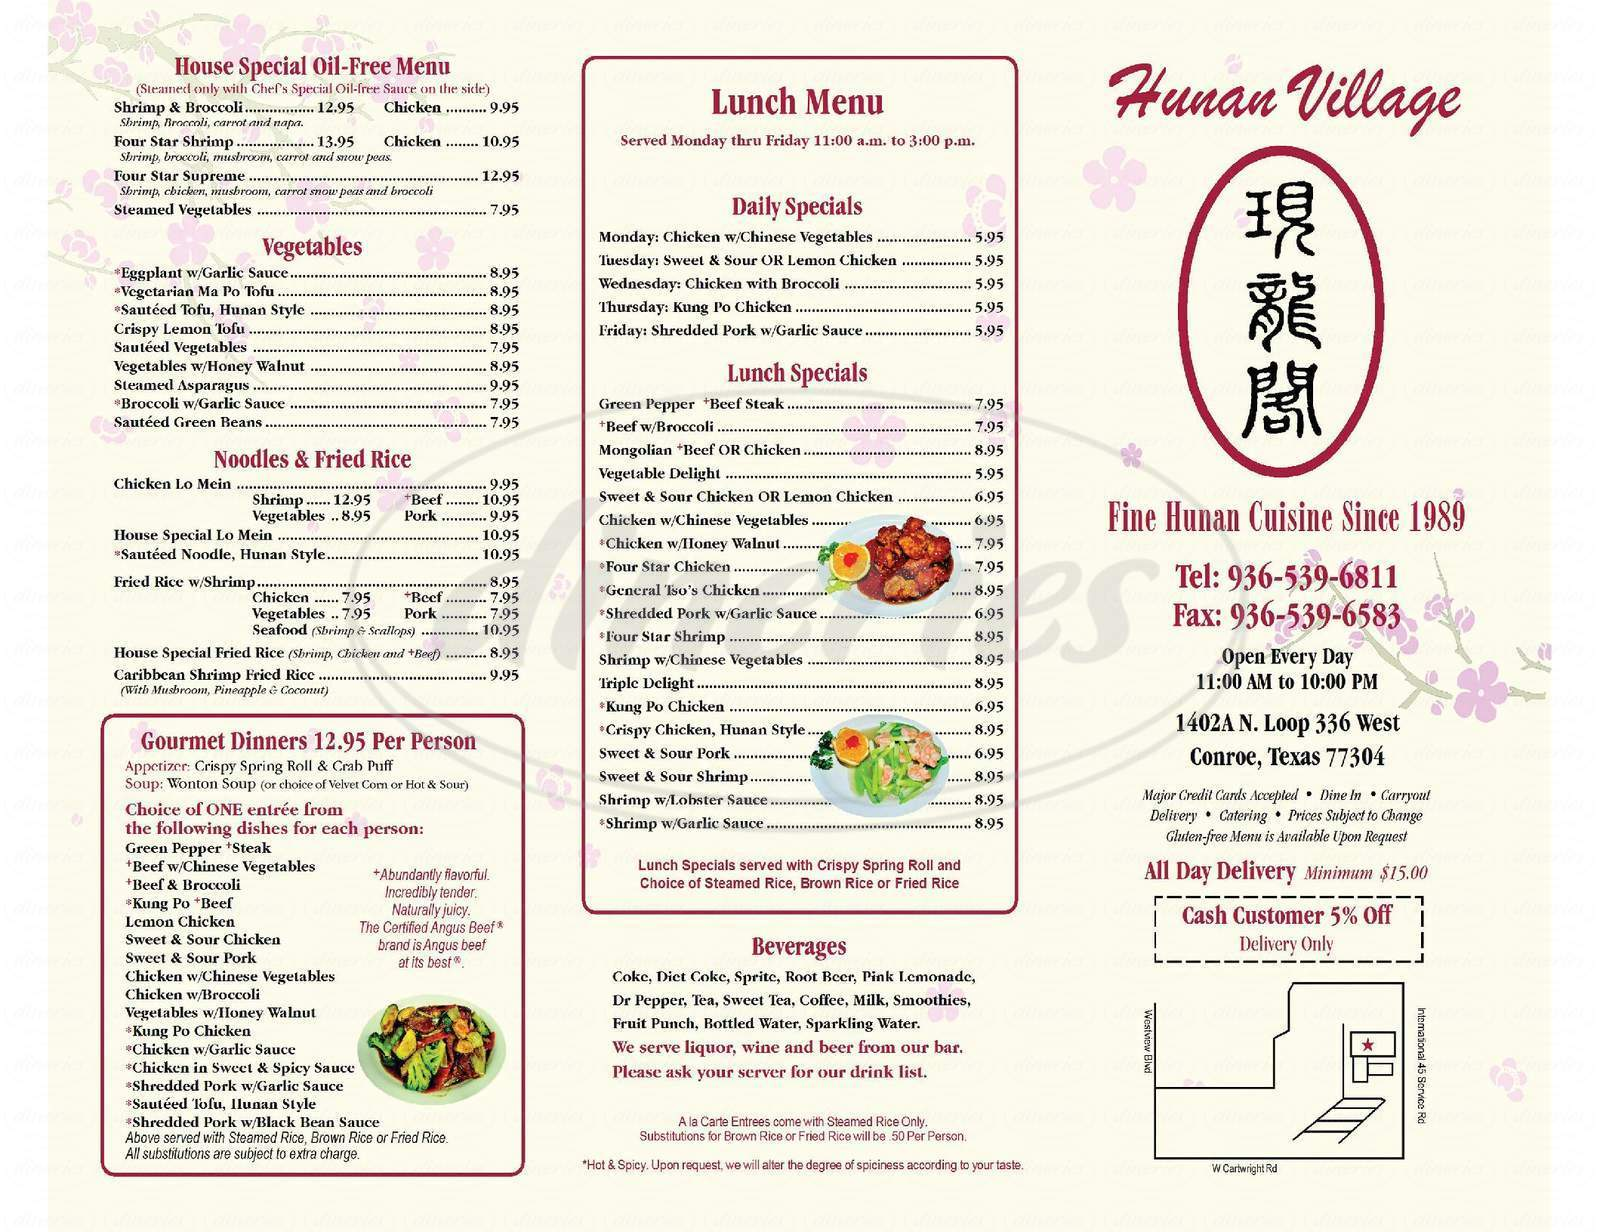 menu for Hunan Village Restaurant